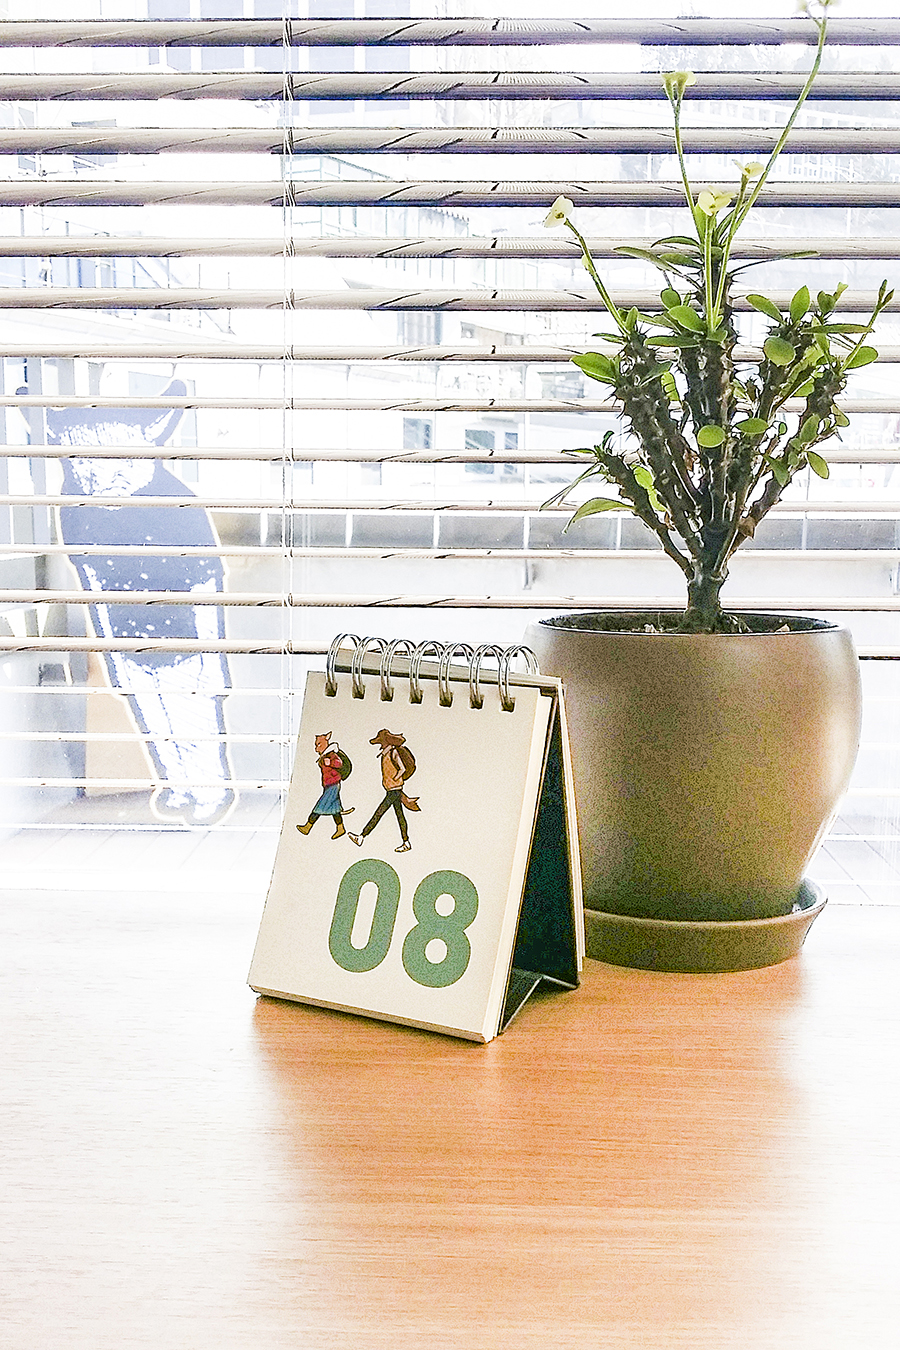 Cute calendar and plant on a reading desk at the library in Seoul Comics Space Zaemirang at Zaemiro Seoul Comics Road, South Korea.